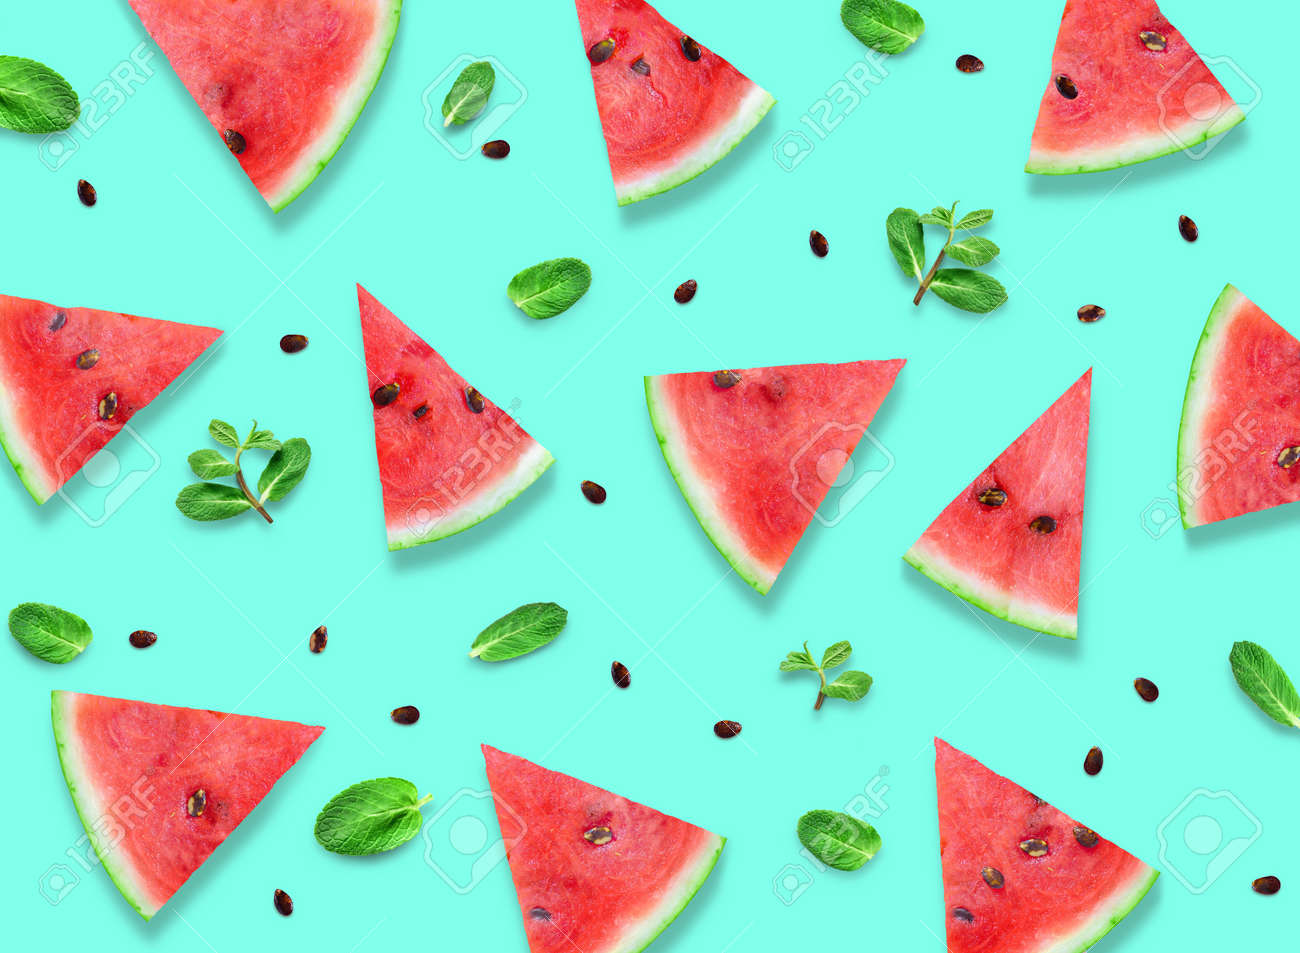 Watermelon slices with fresh mint leaves pattern. - 169711071